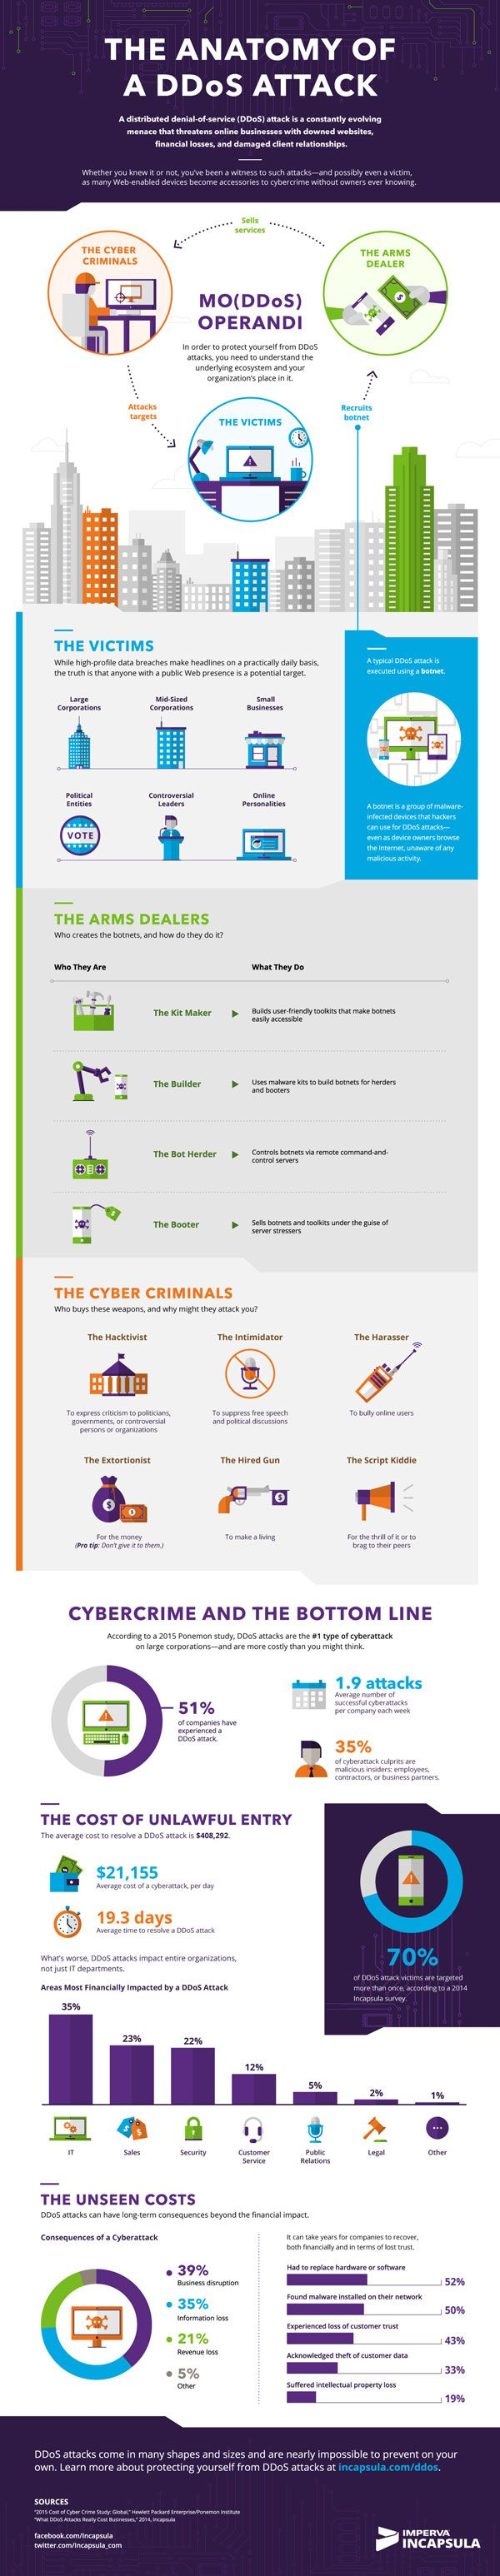 The Anatomy of a DDoS Attack #Infographic